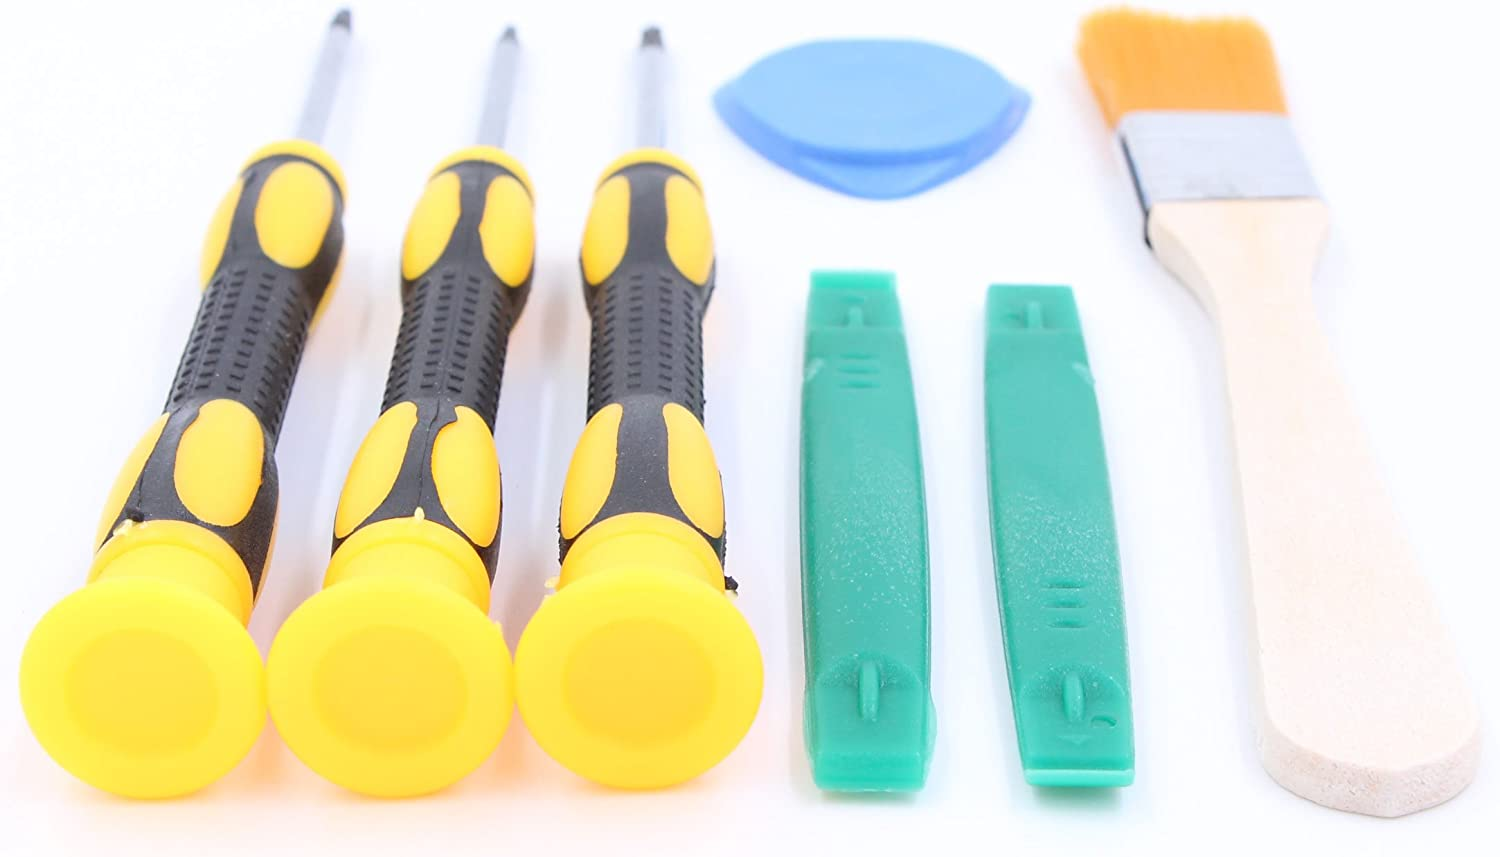 Premium Tamper Proof 360 Controller Screwdrivers Set With Safe Prying Tool /& Cleaning Brush LeBeila Torx T10 T6 T8 Security Screwdriver Repair Kit For Xbox One//Ps4 Xbox 360 Controller Screwdriver